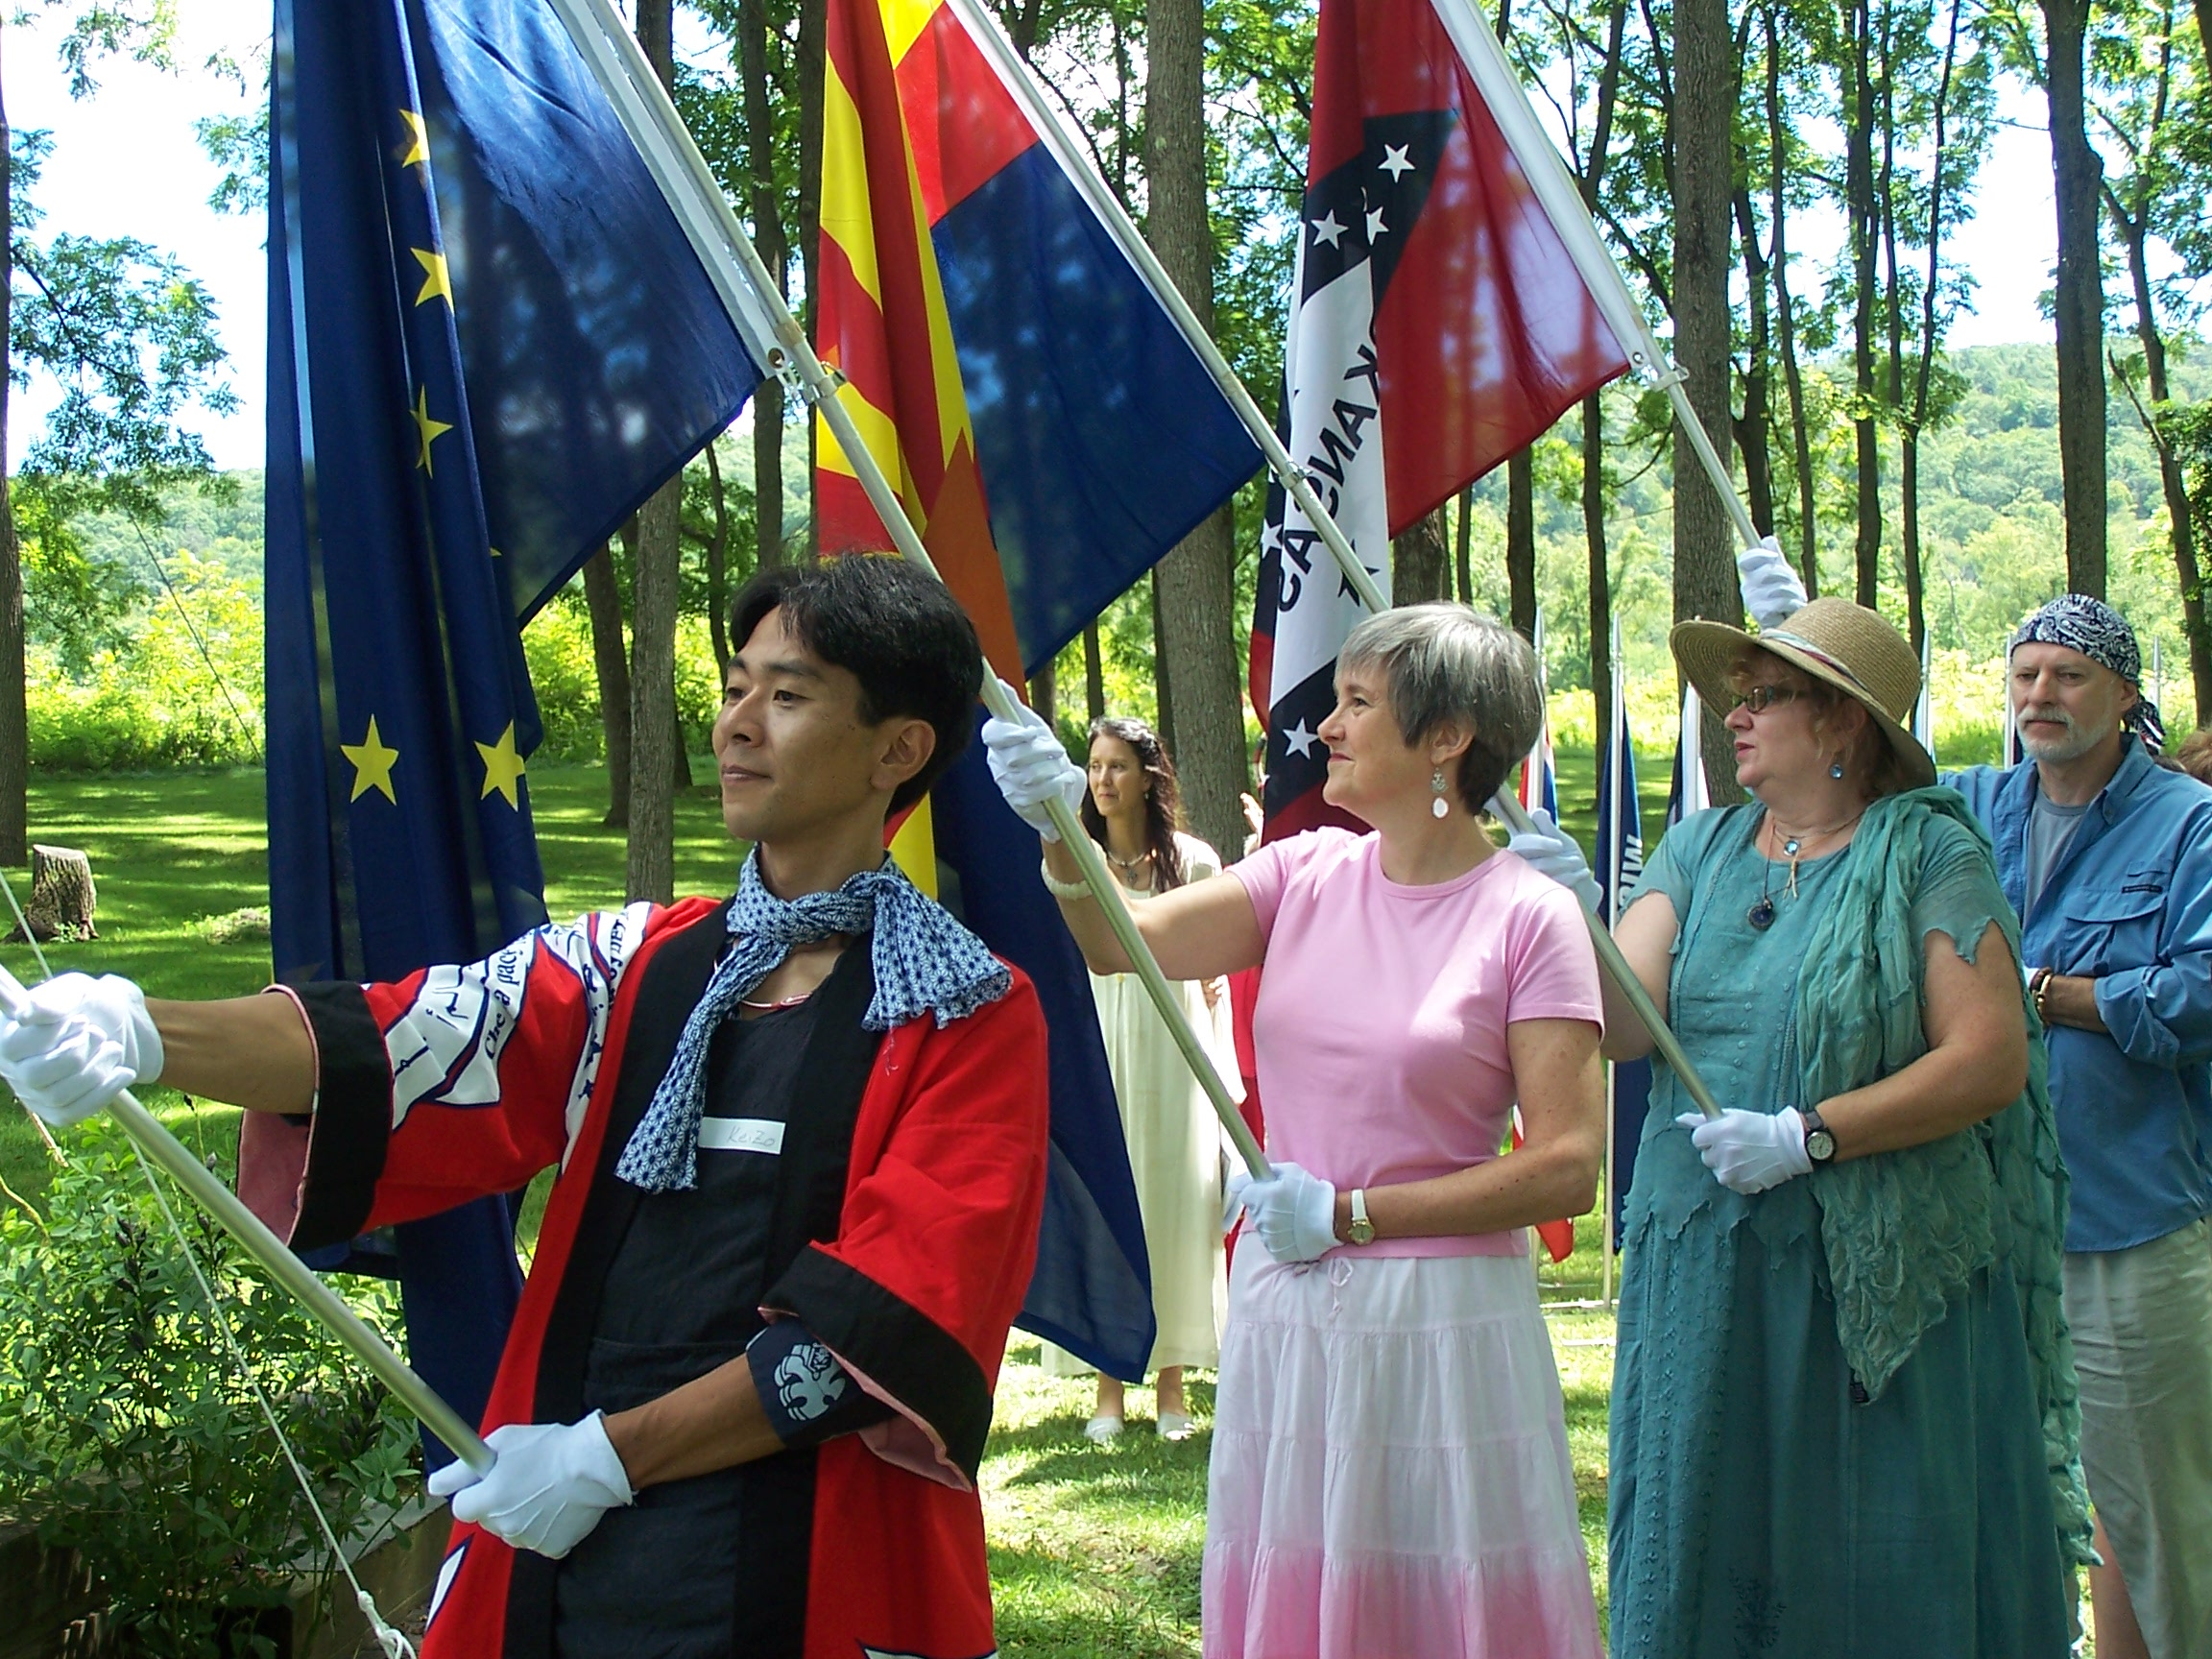 Keizo Aoi, Deborah Moldow and Tonia Shoumatoff participate in the United States of America Flag Ceremony.